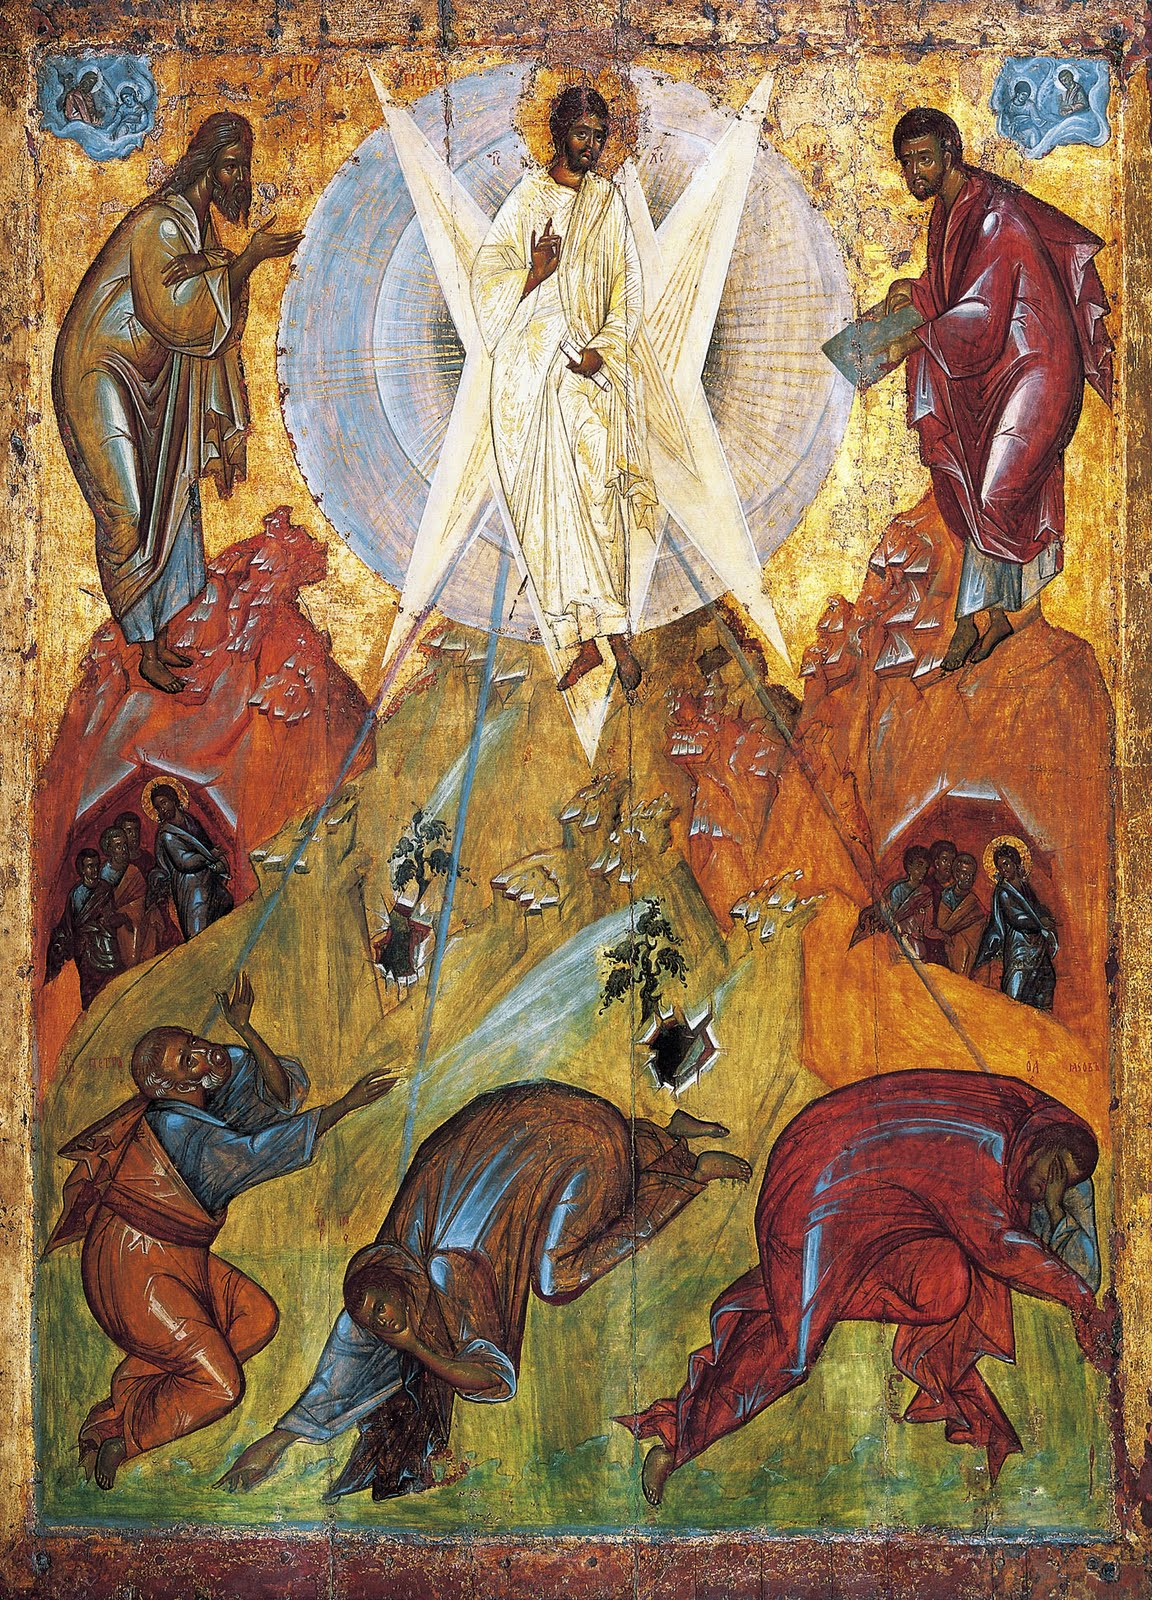 August 5, 2018 – Eleventh Sunday after Pentecost, Tone 2; Fore-feast of the Transfiguration of Our Lord Jesus Christ; Commemoration of the Consecration of the Holy Resurrection Patriarchal Sobor; Holy Martyr Eusignius (360-63). Dormition Fast